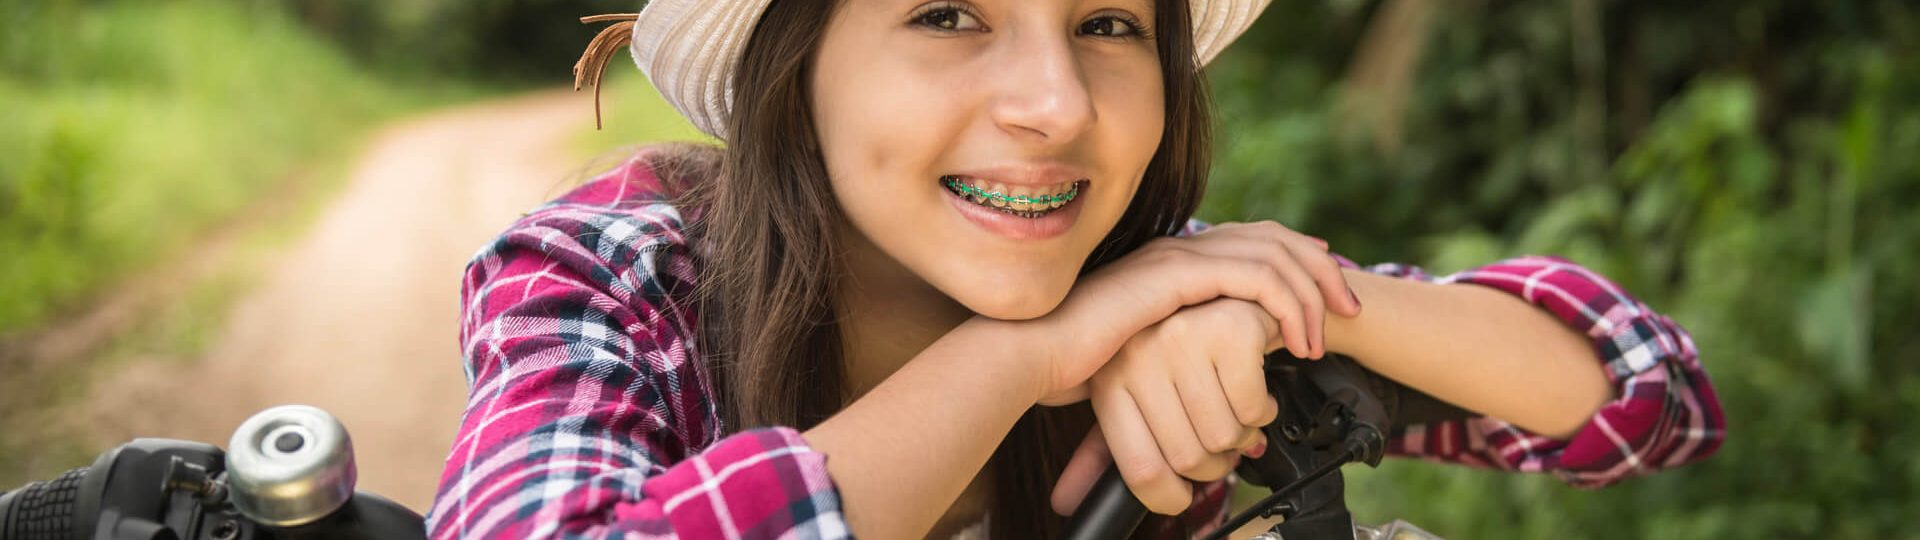 Advantages & Disadvantages of Accelerated Orthodontics